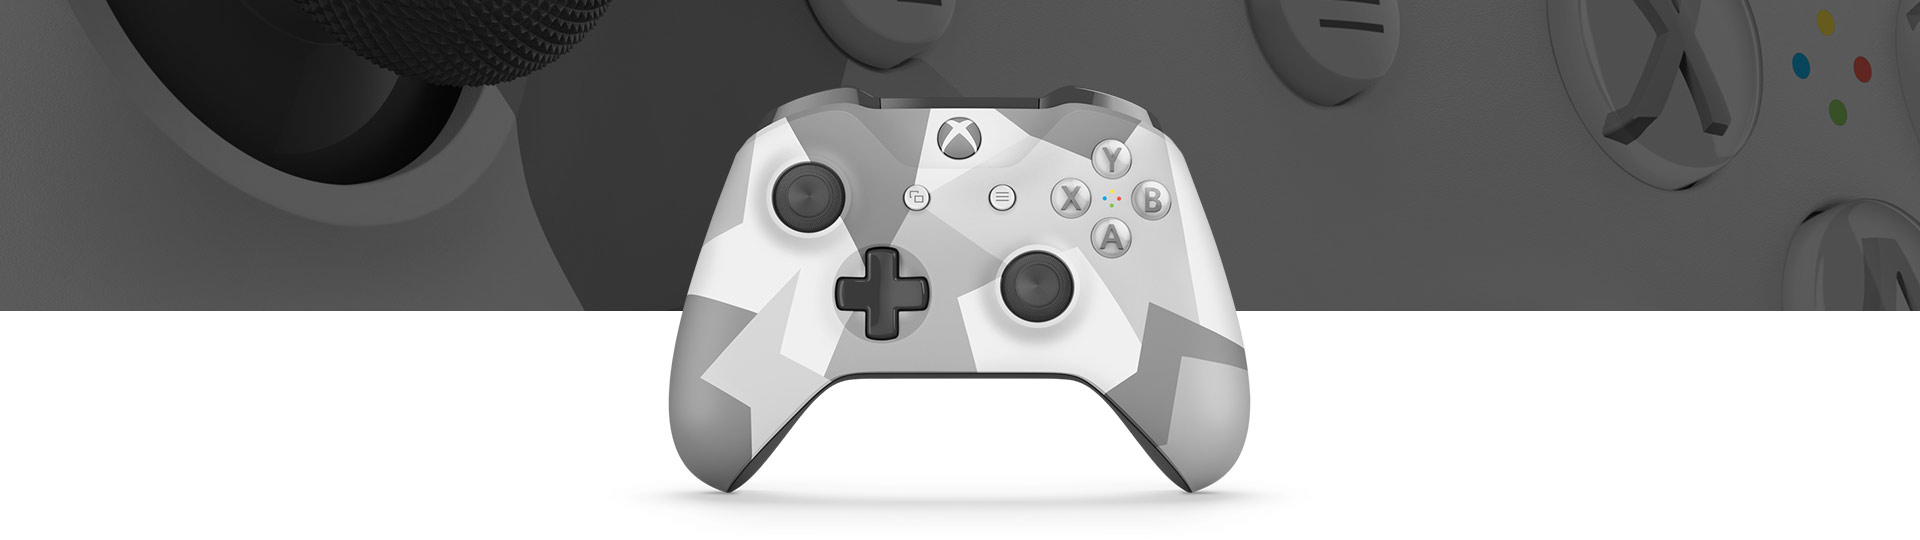 Xbox wireless controller winter forces edition